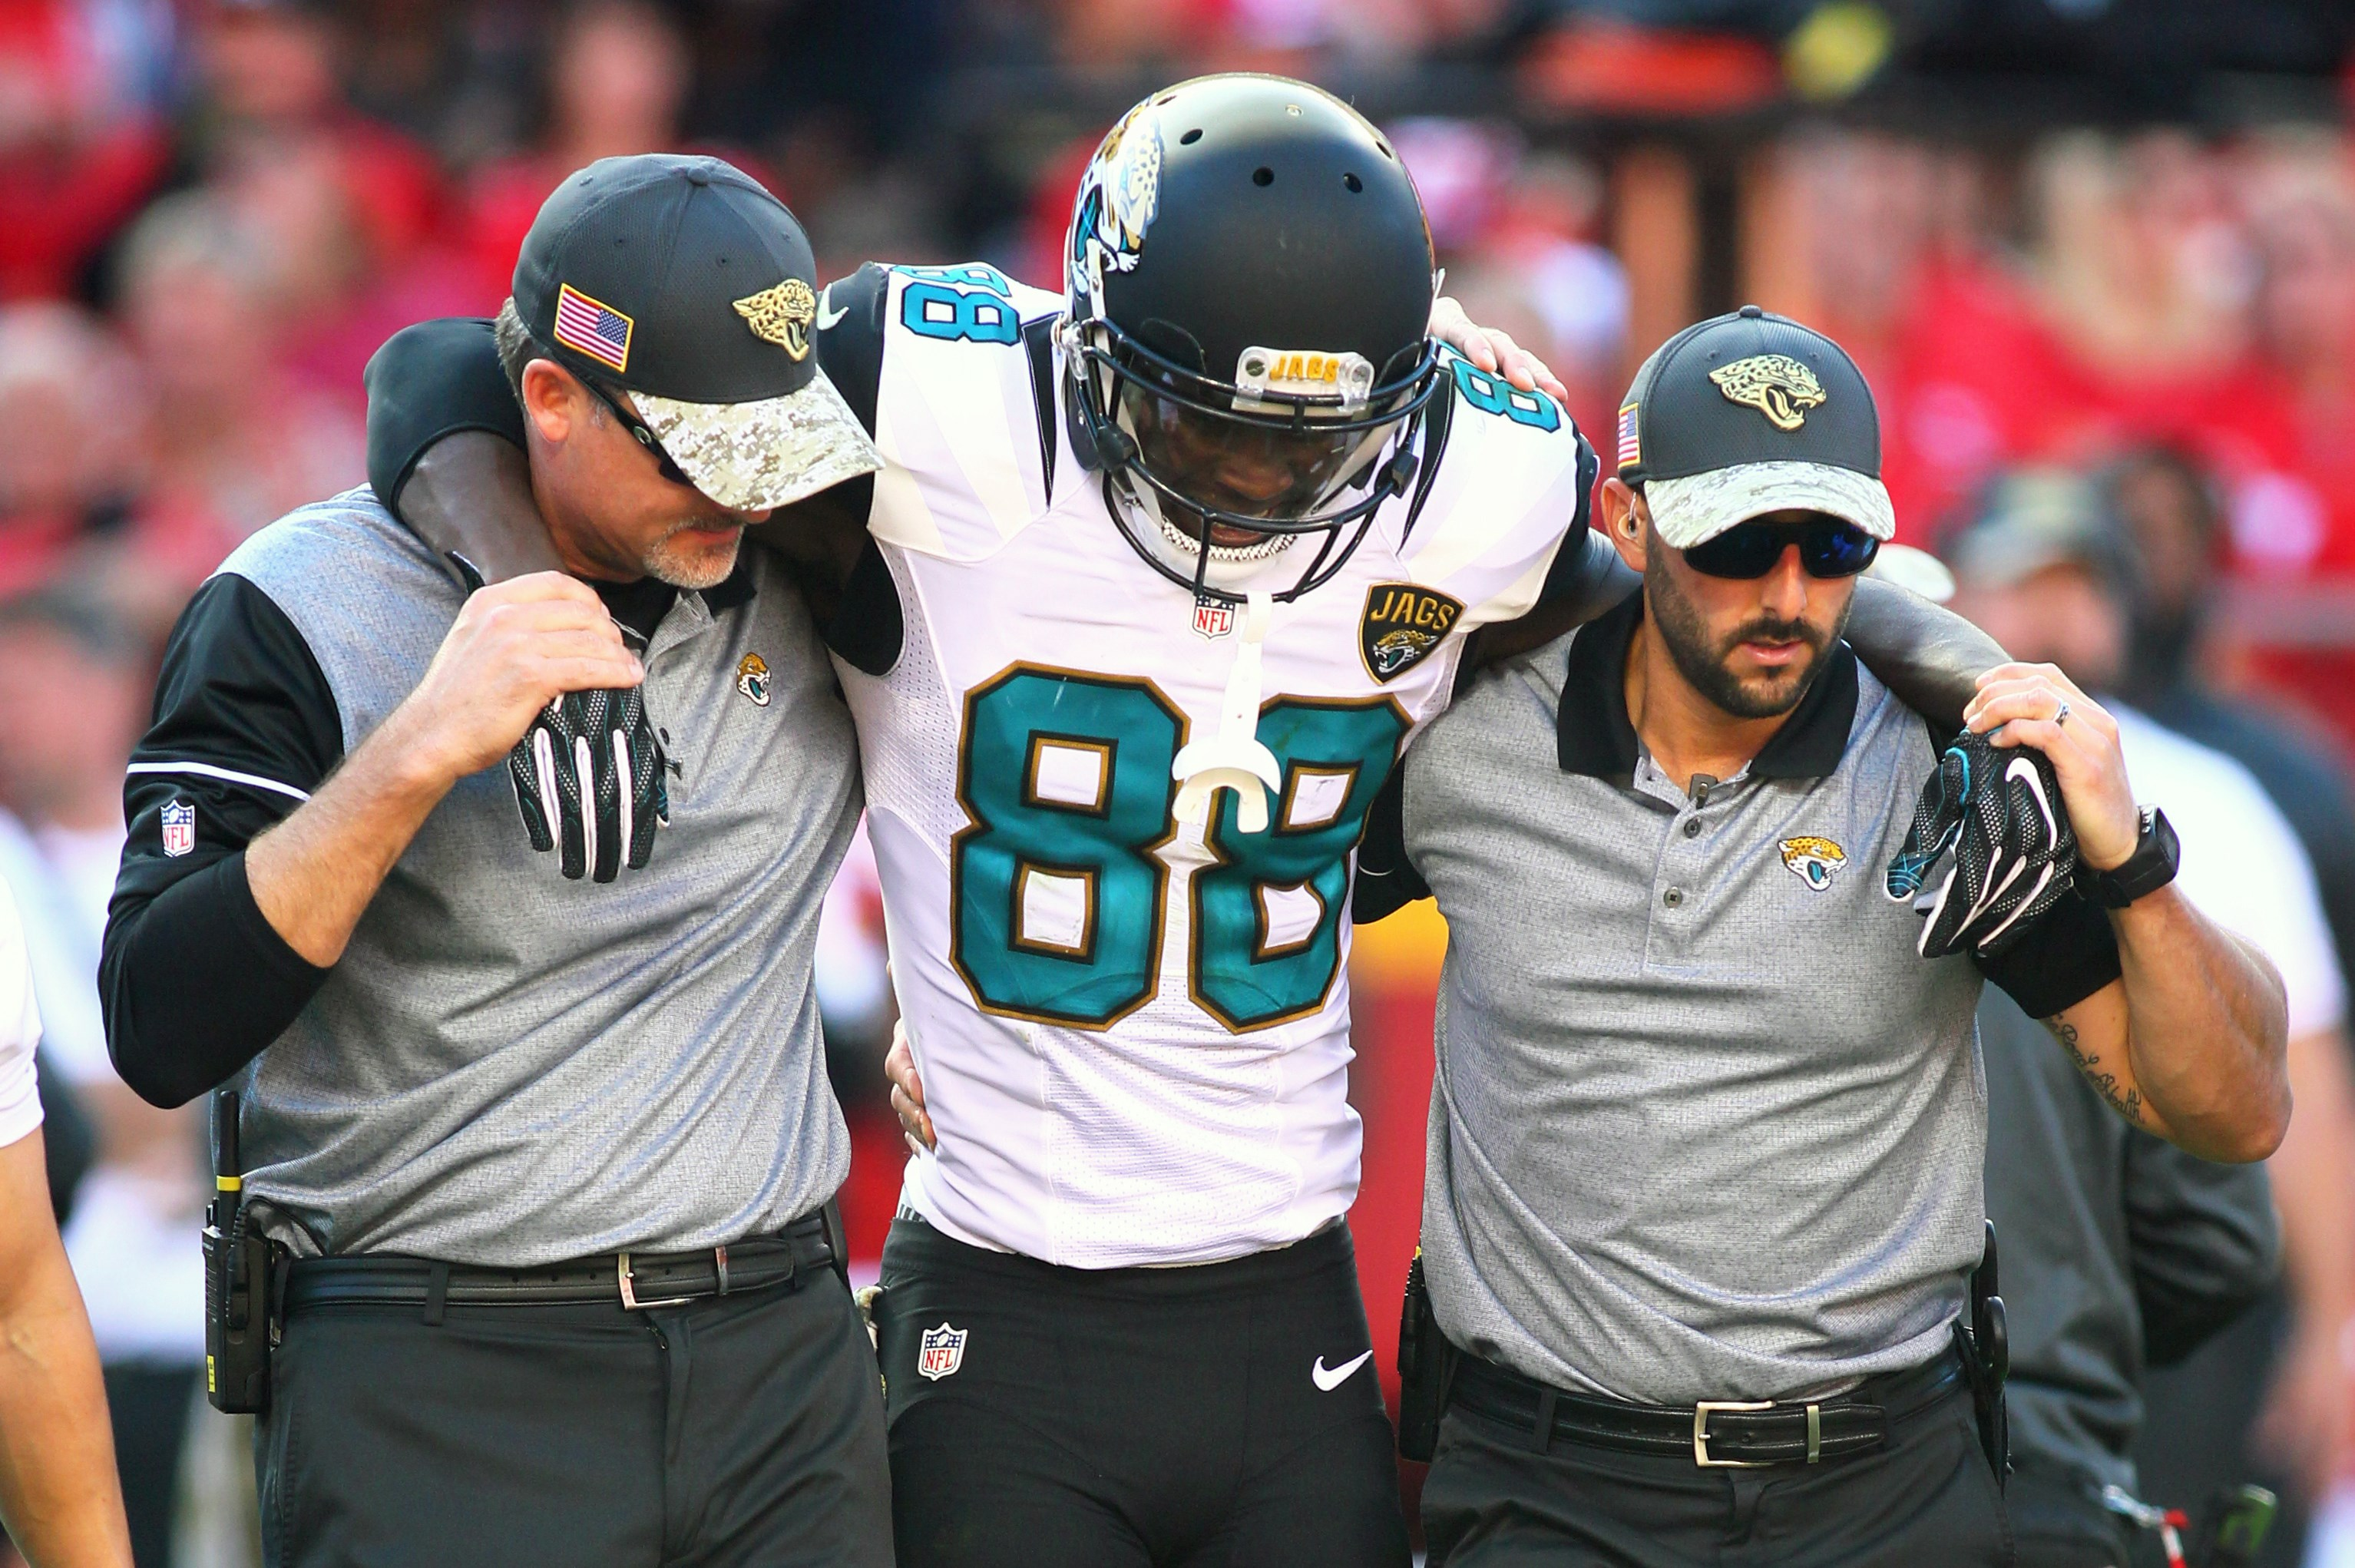 Jacksonville Jaguars wide receiver Allen Hurns (88) is helped off the field after an injury during an NFL game against the Kansas City Chiefs on Sunday Nov. 6, 2016 at Arrowhead Stadium in Kansas City, Mo. The Chiefs won the game 19-14.  (AP Photo/TUSP, J